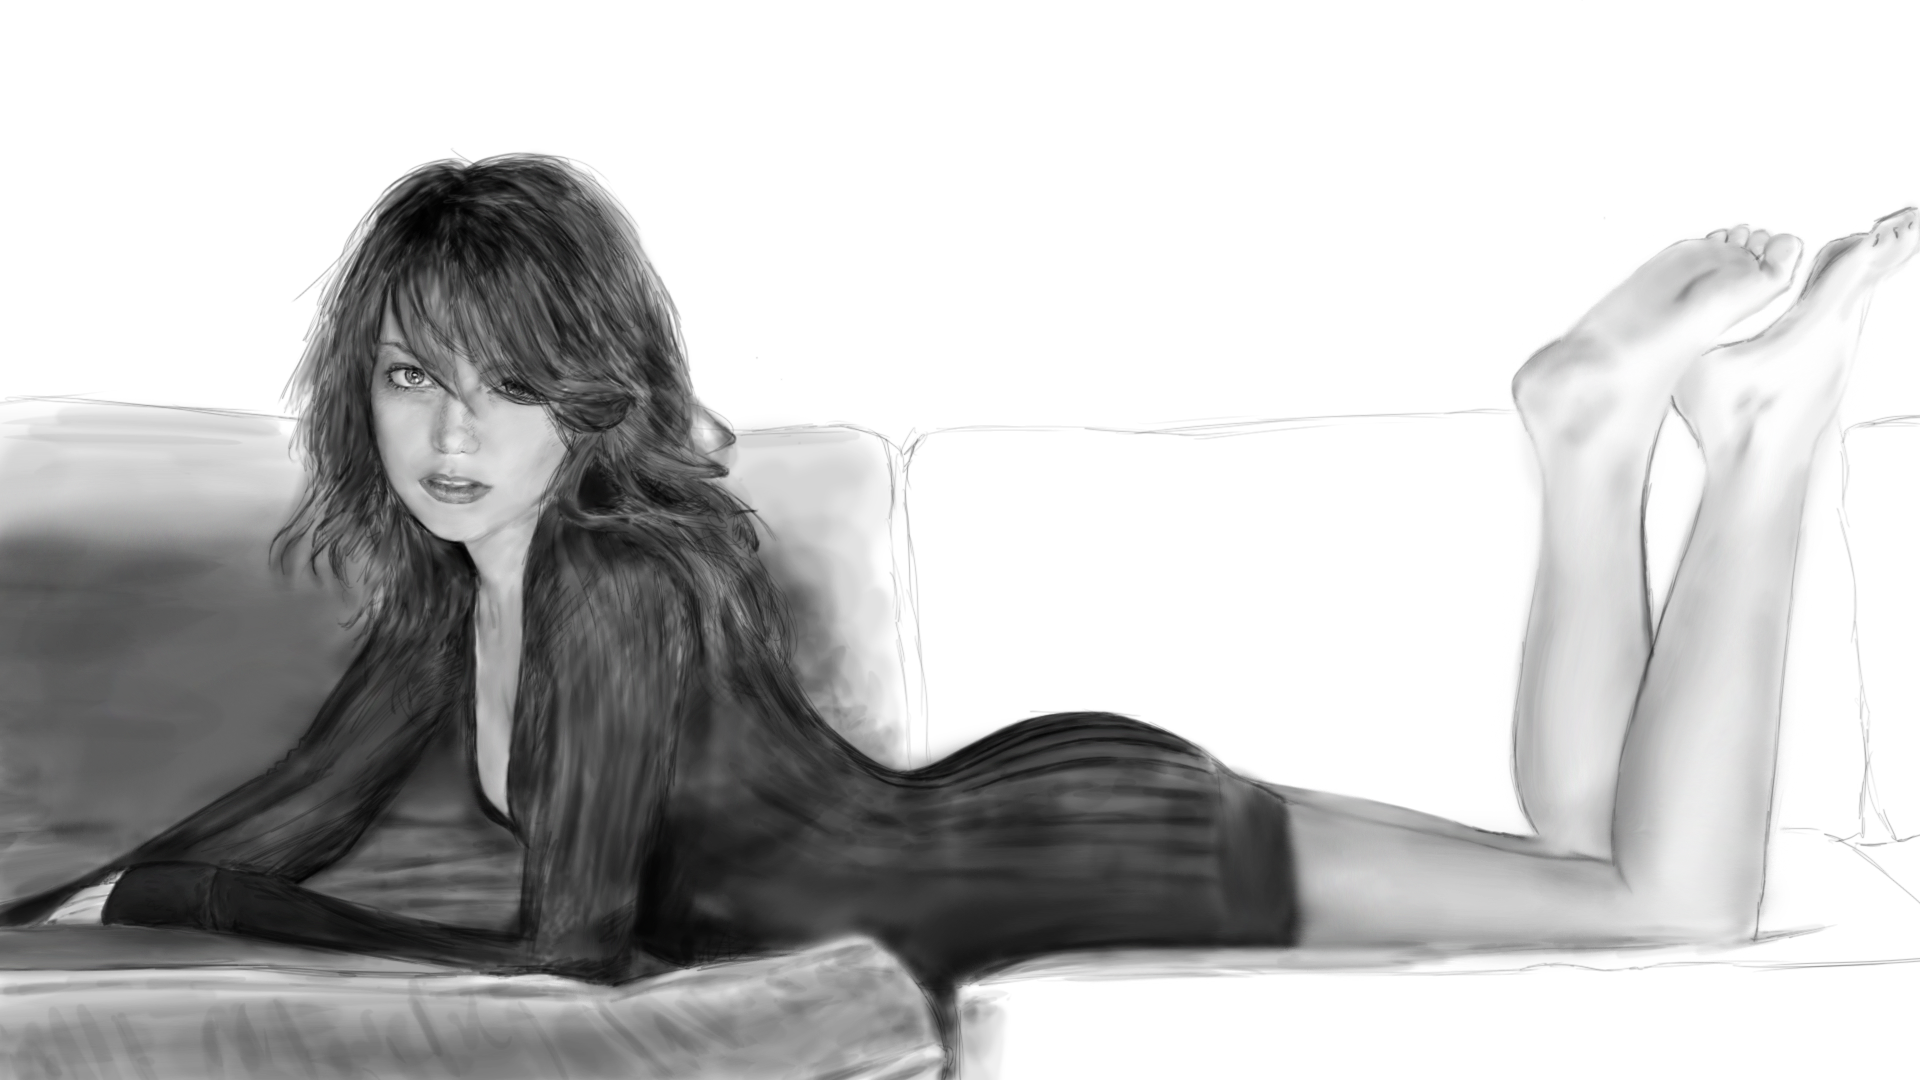 Drawing of the actress Emma Stone